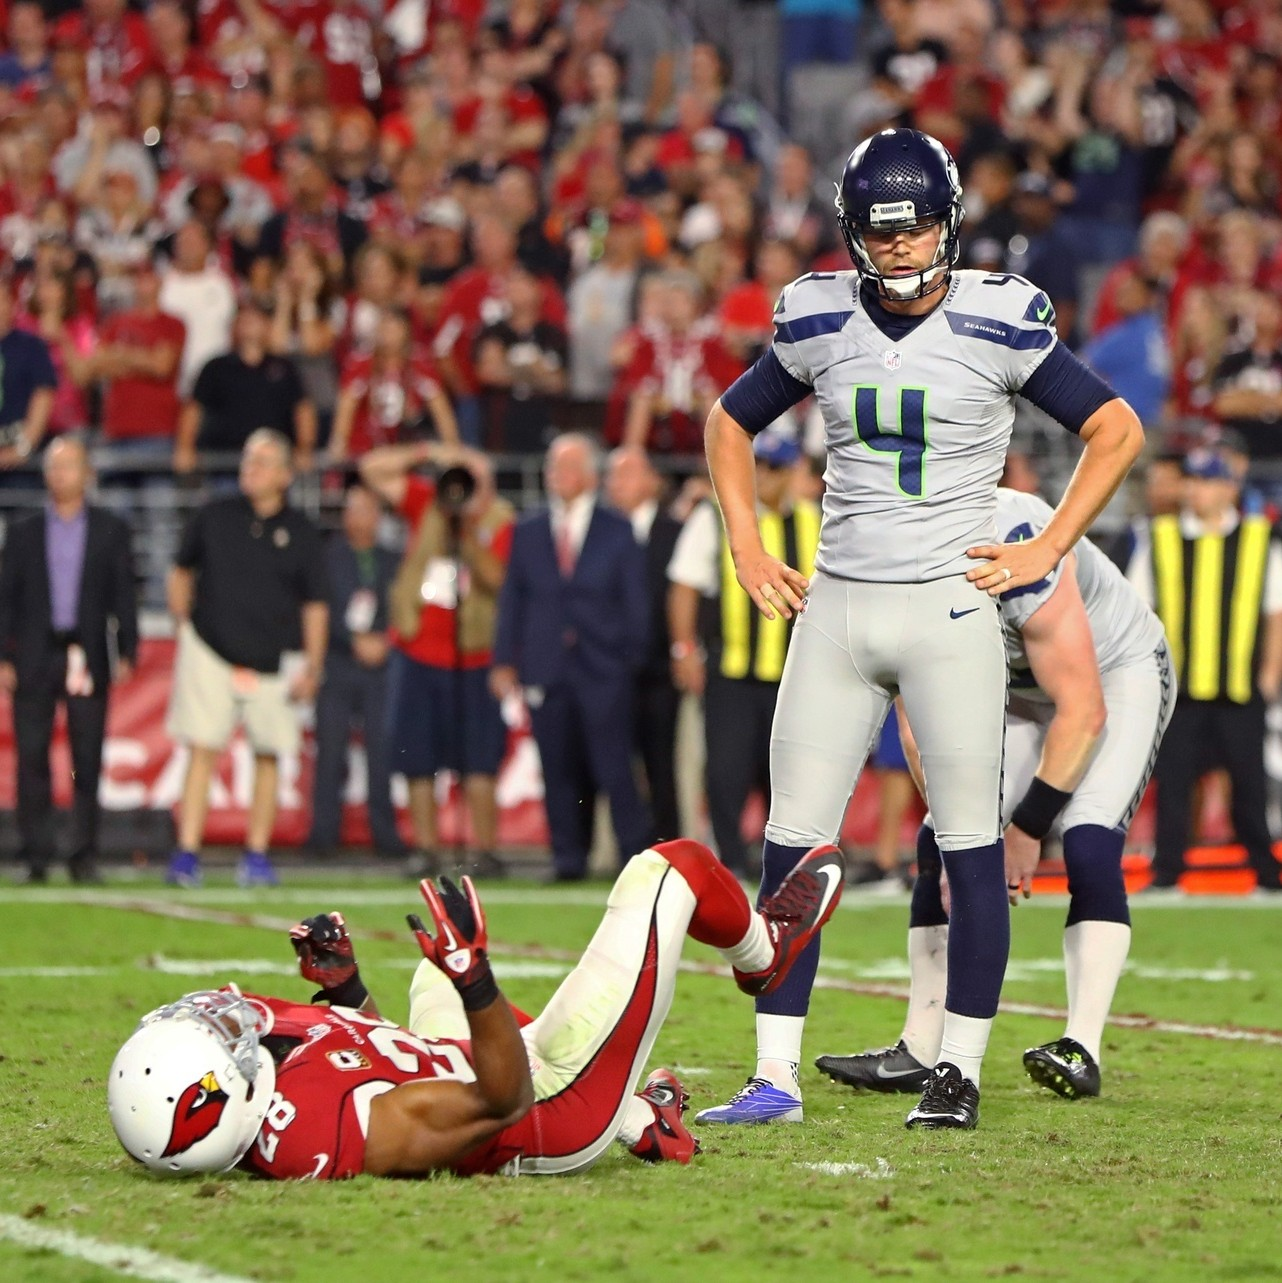 Even-the-cardinals-seahawks-tie-cant-save-this-dumb-season-week-7-of-dumb-football-with-mike-tunison-1477324932.jpg?crop=0.6998050682261209xw:1xh;0